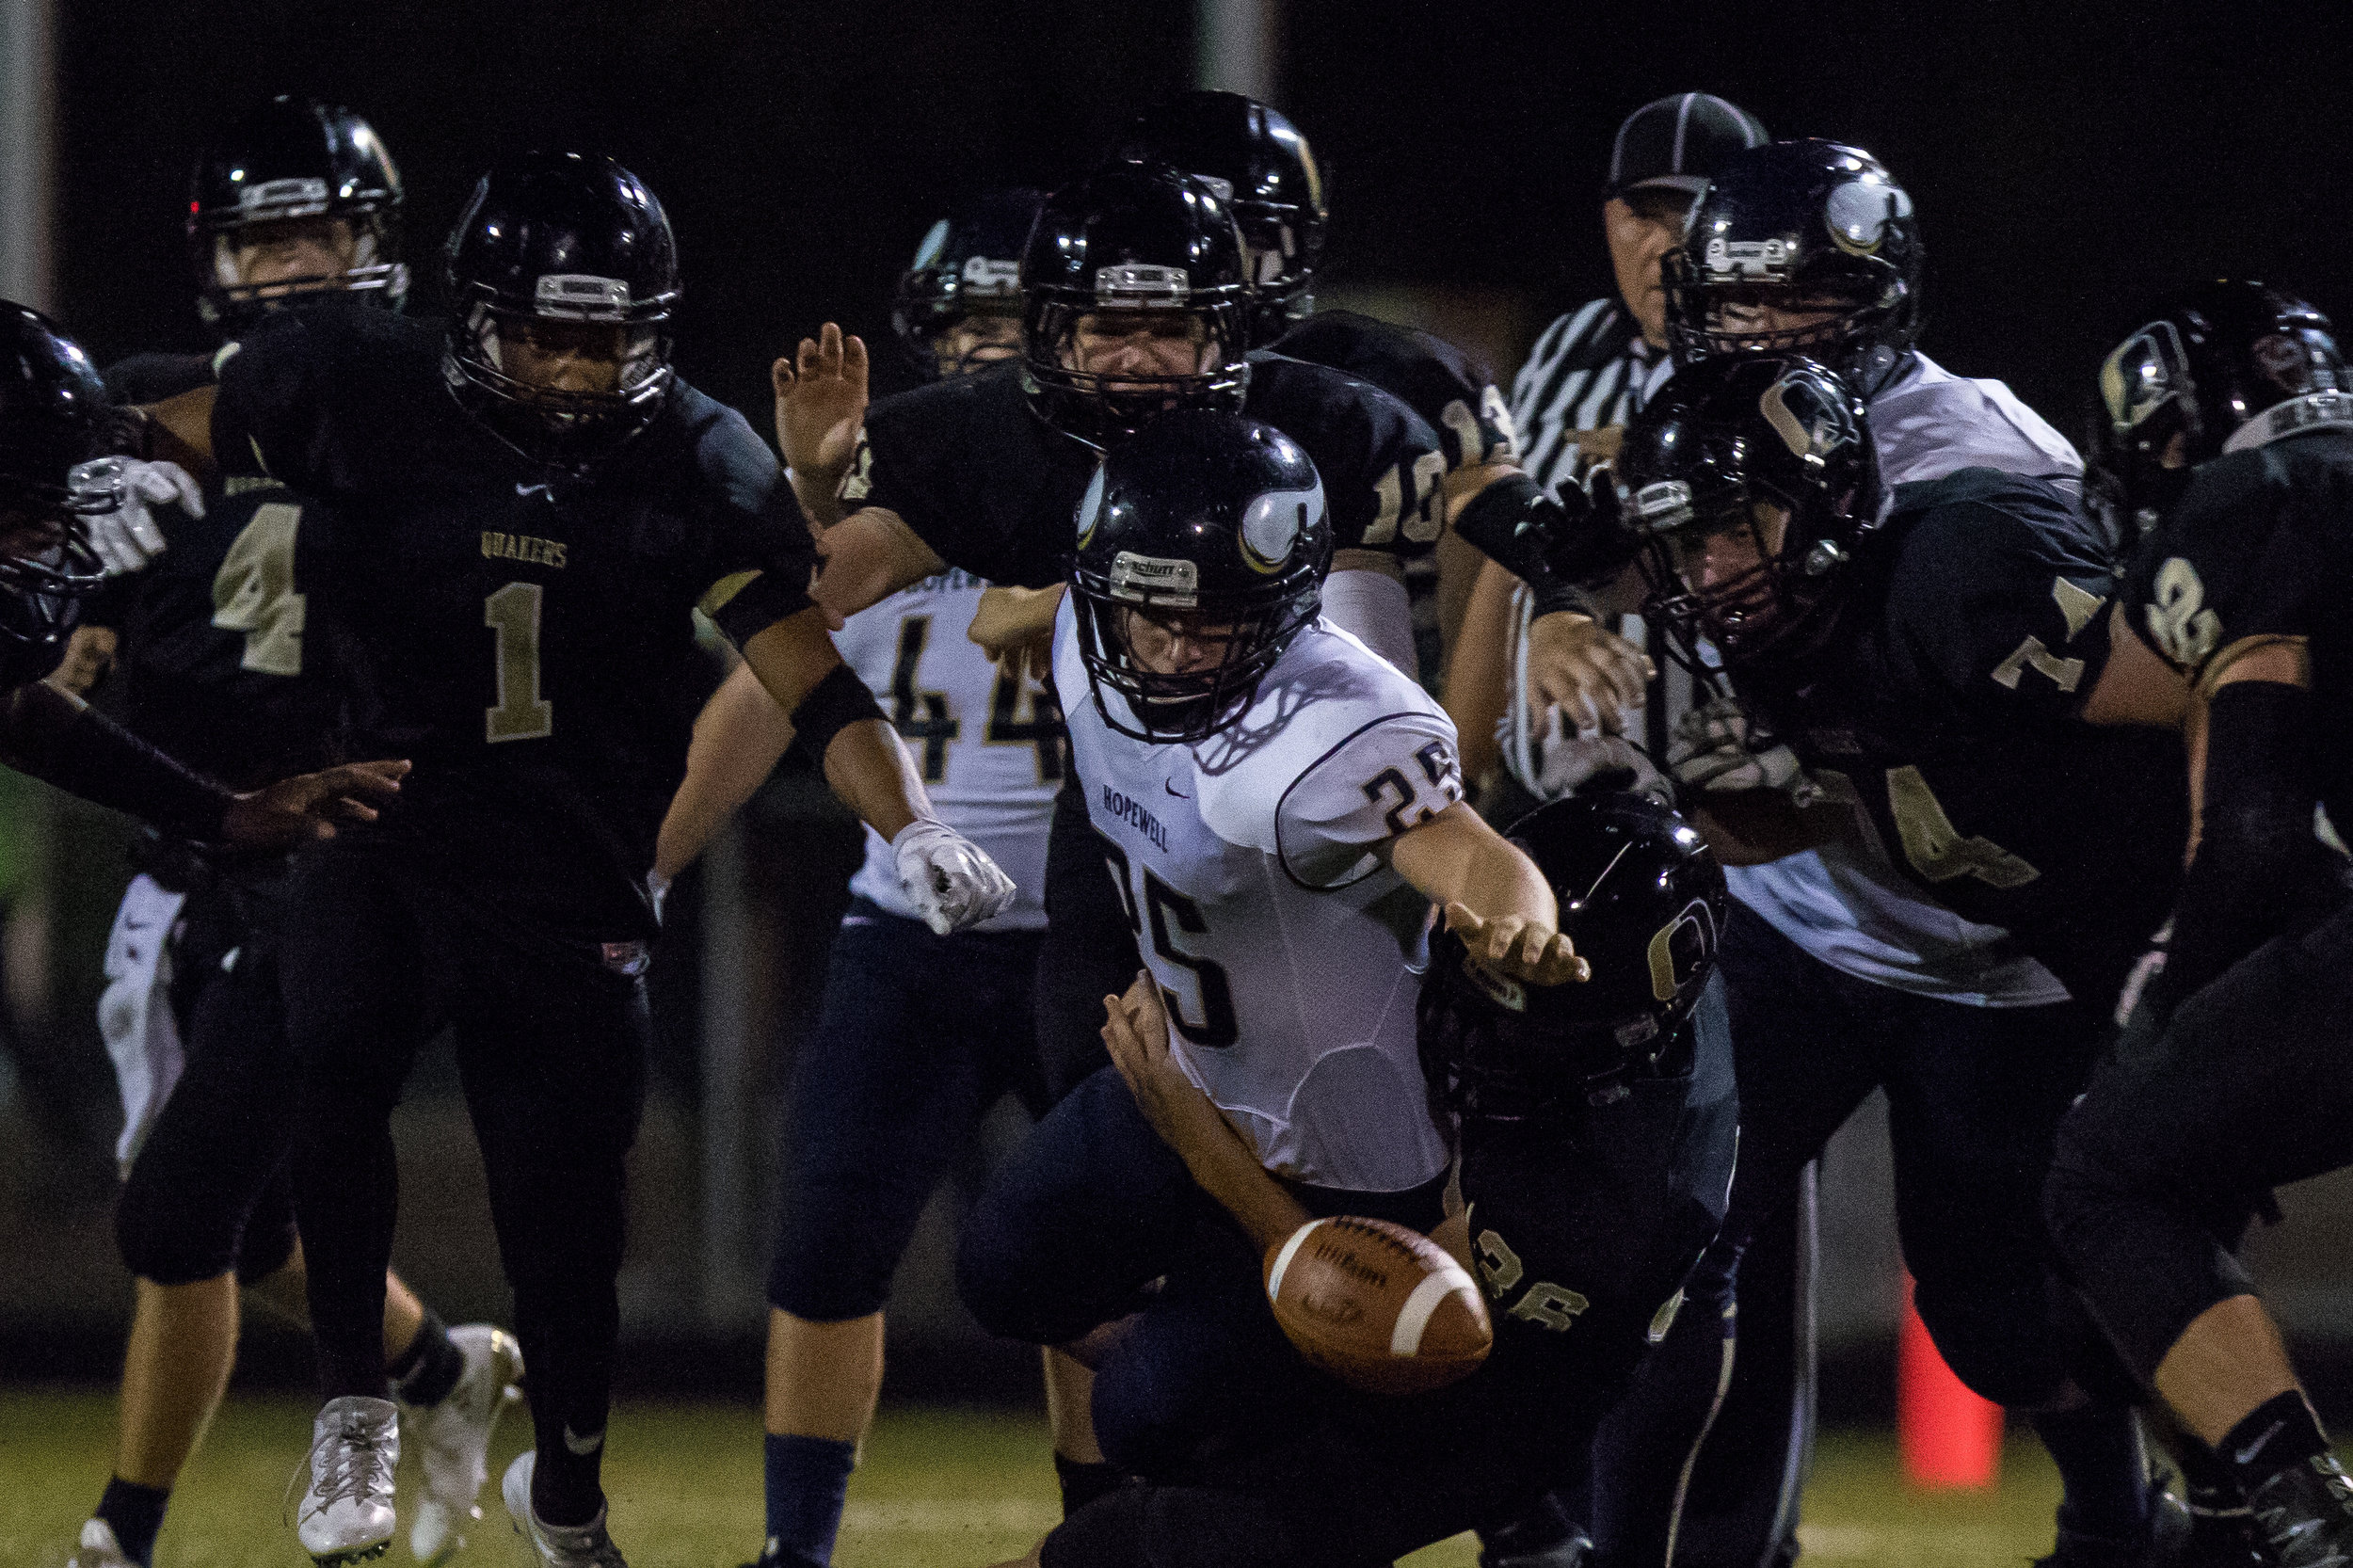 Hopewell's Daniel Wes Smith, 25 and Quaker Valley defenders all reach for a fumble caused by Quaker Valley during the second half of play at Quaker Valley on Friday evening. Quaker Valley beat Hopewell at home 31-14.